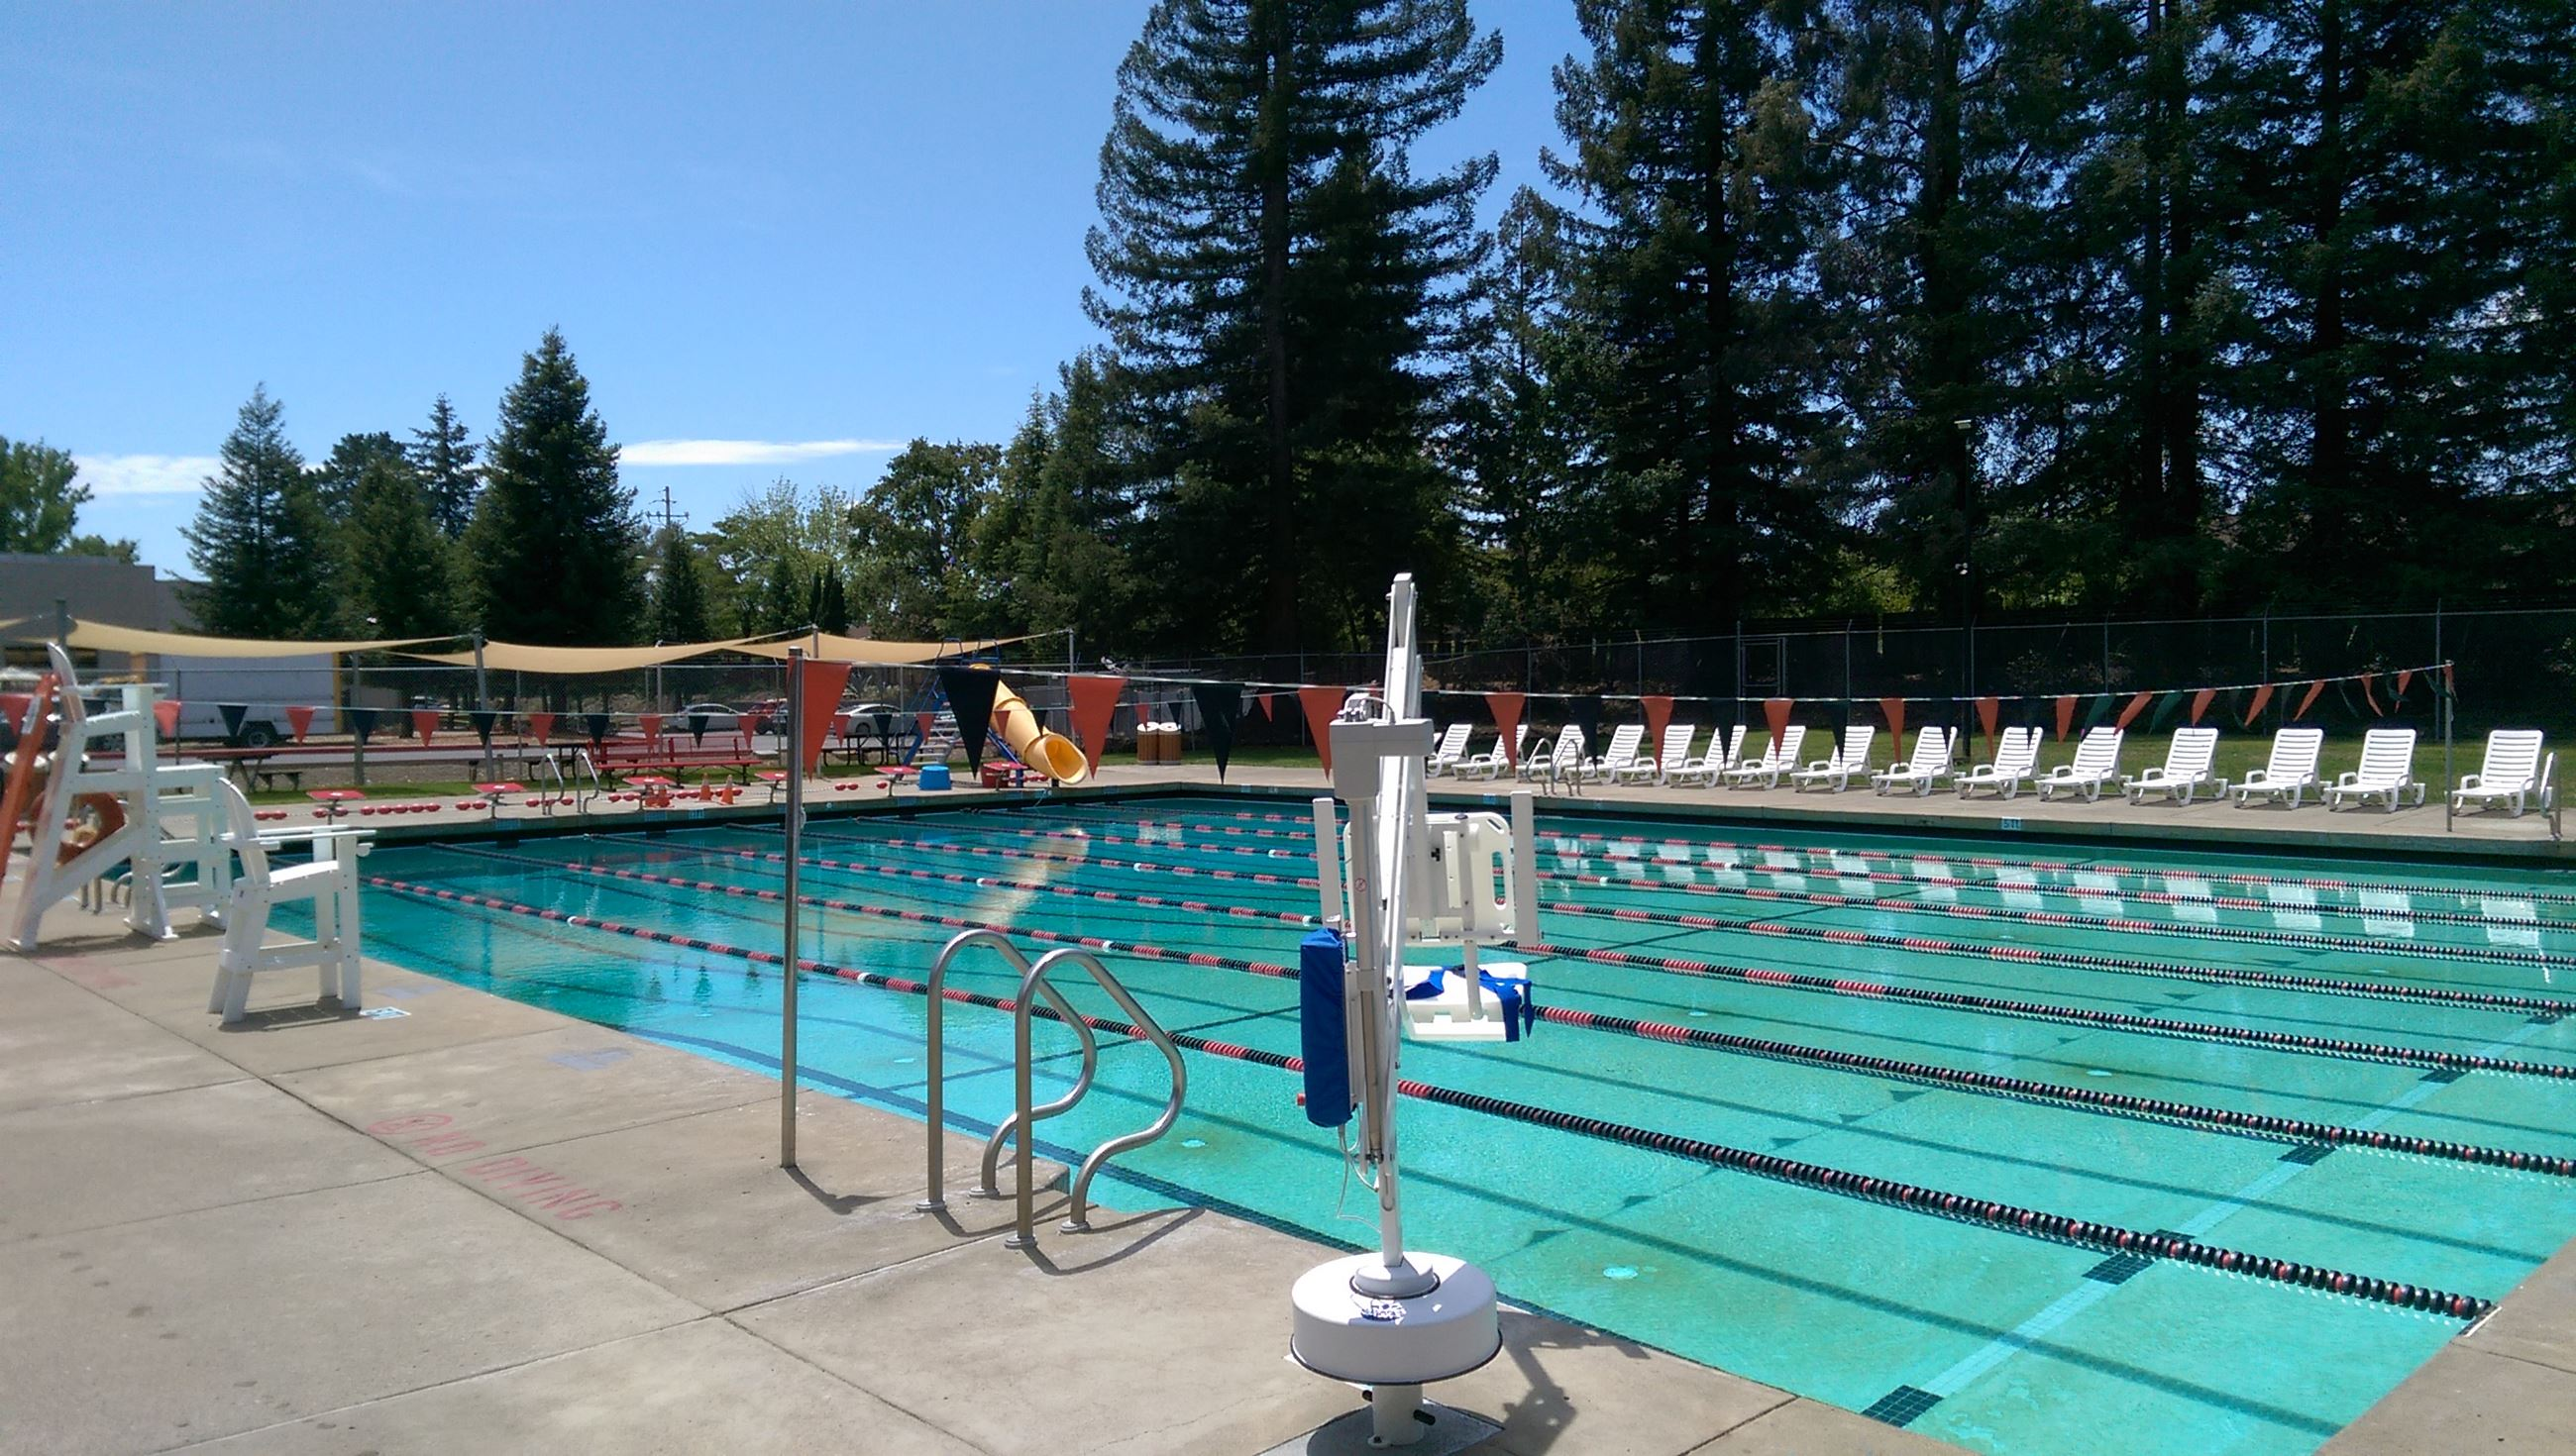 Healdsburg Swim Center